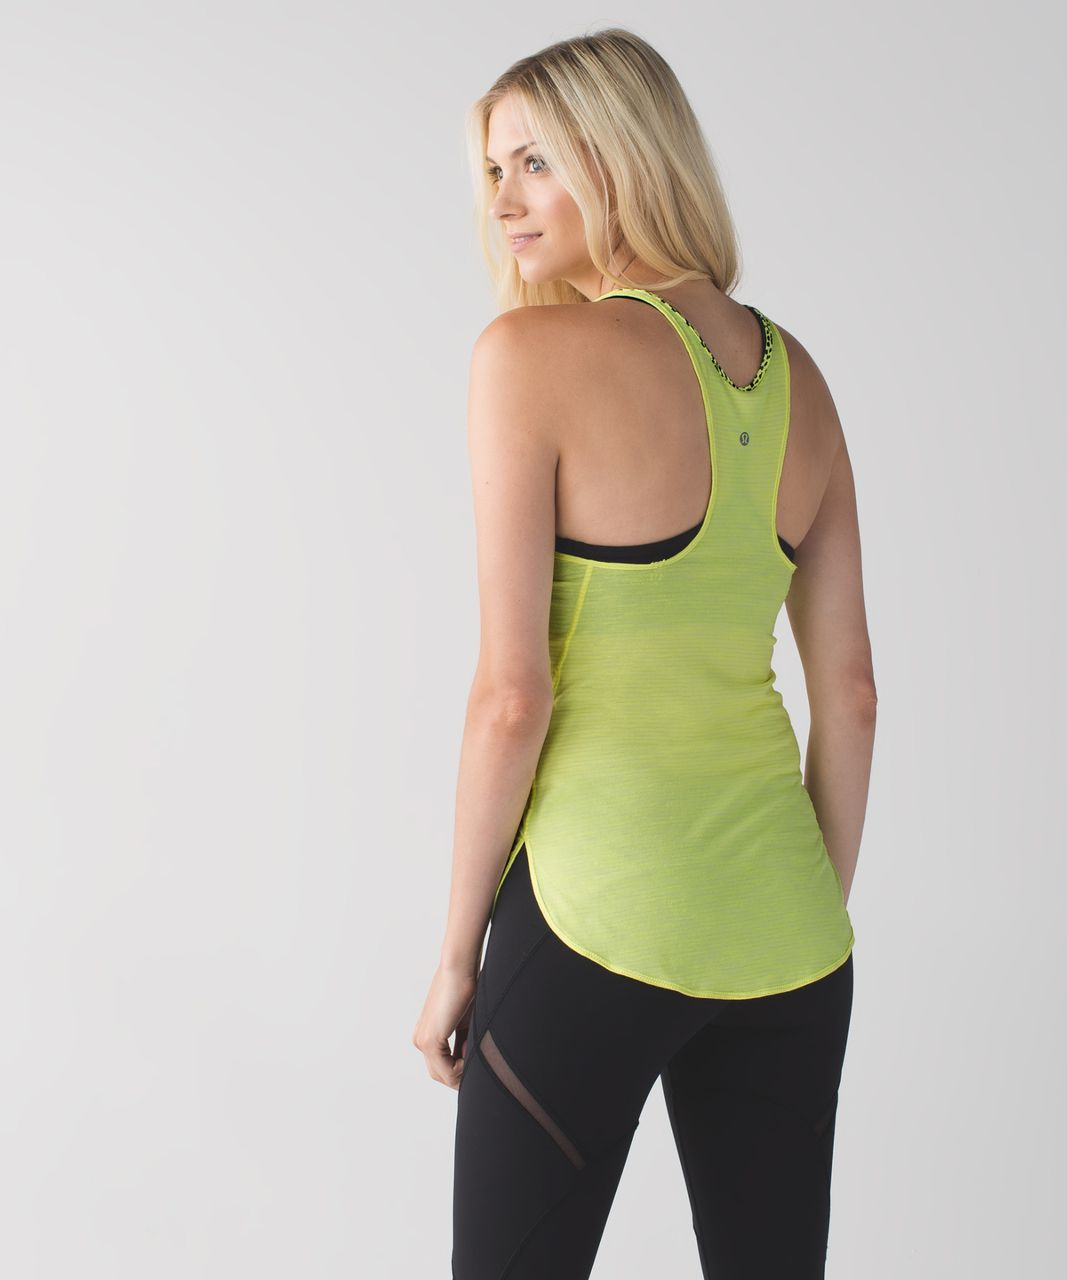 Lululemon What The Sport Singlet - Heathered Clarity Yellow